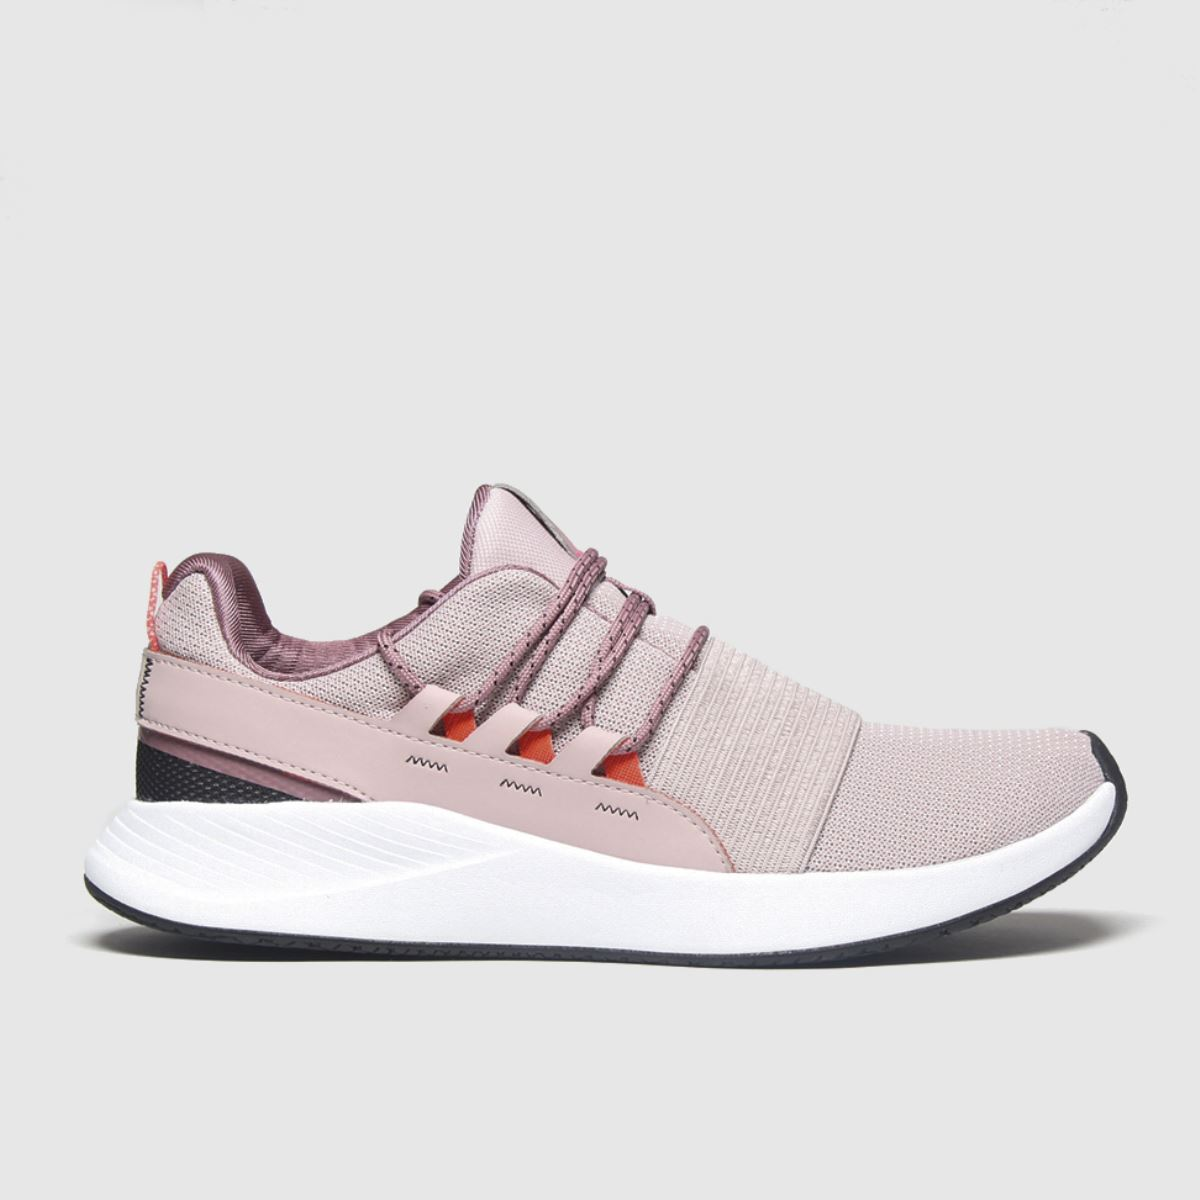 Under Armour White & Pink Charged Breathe Trainers